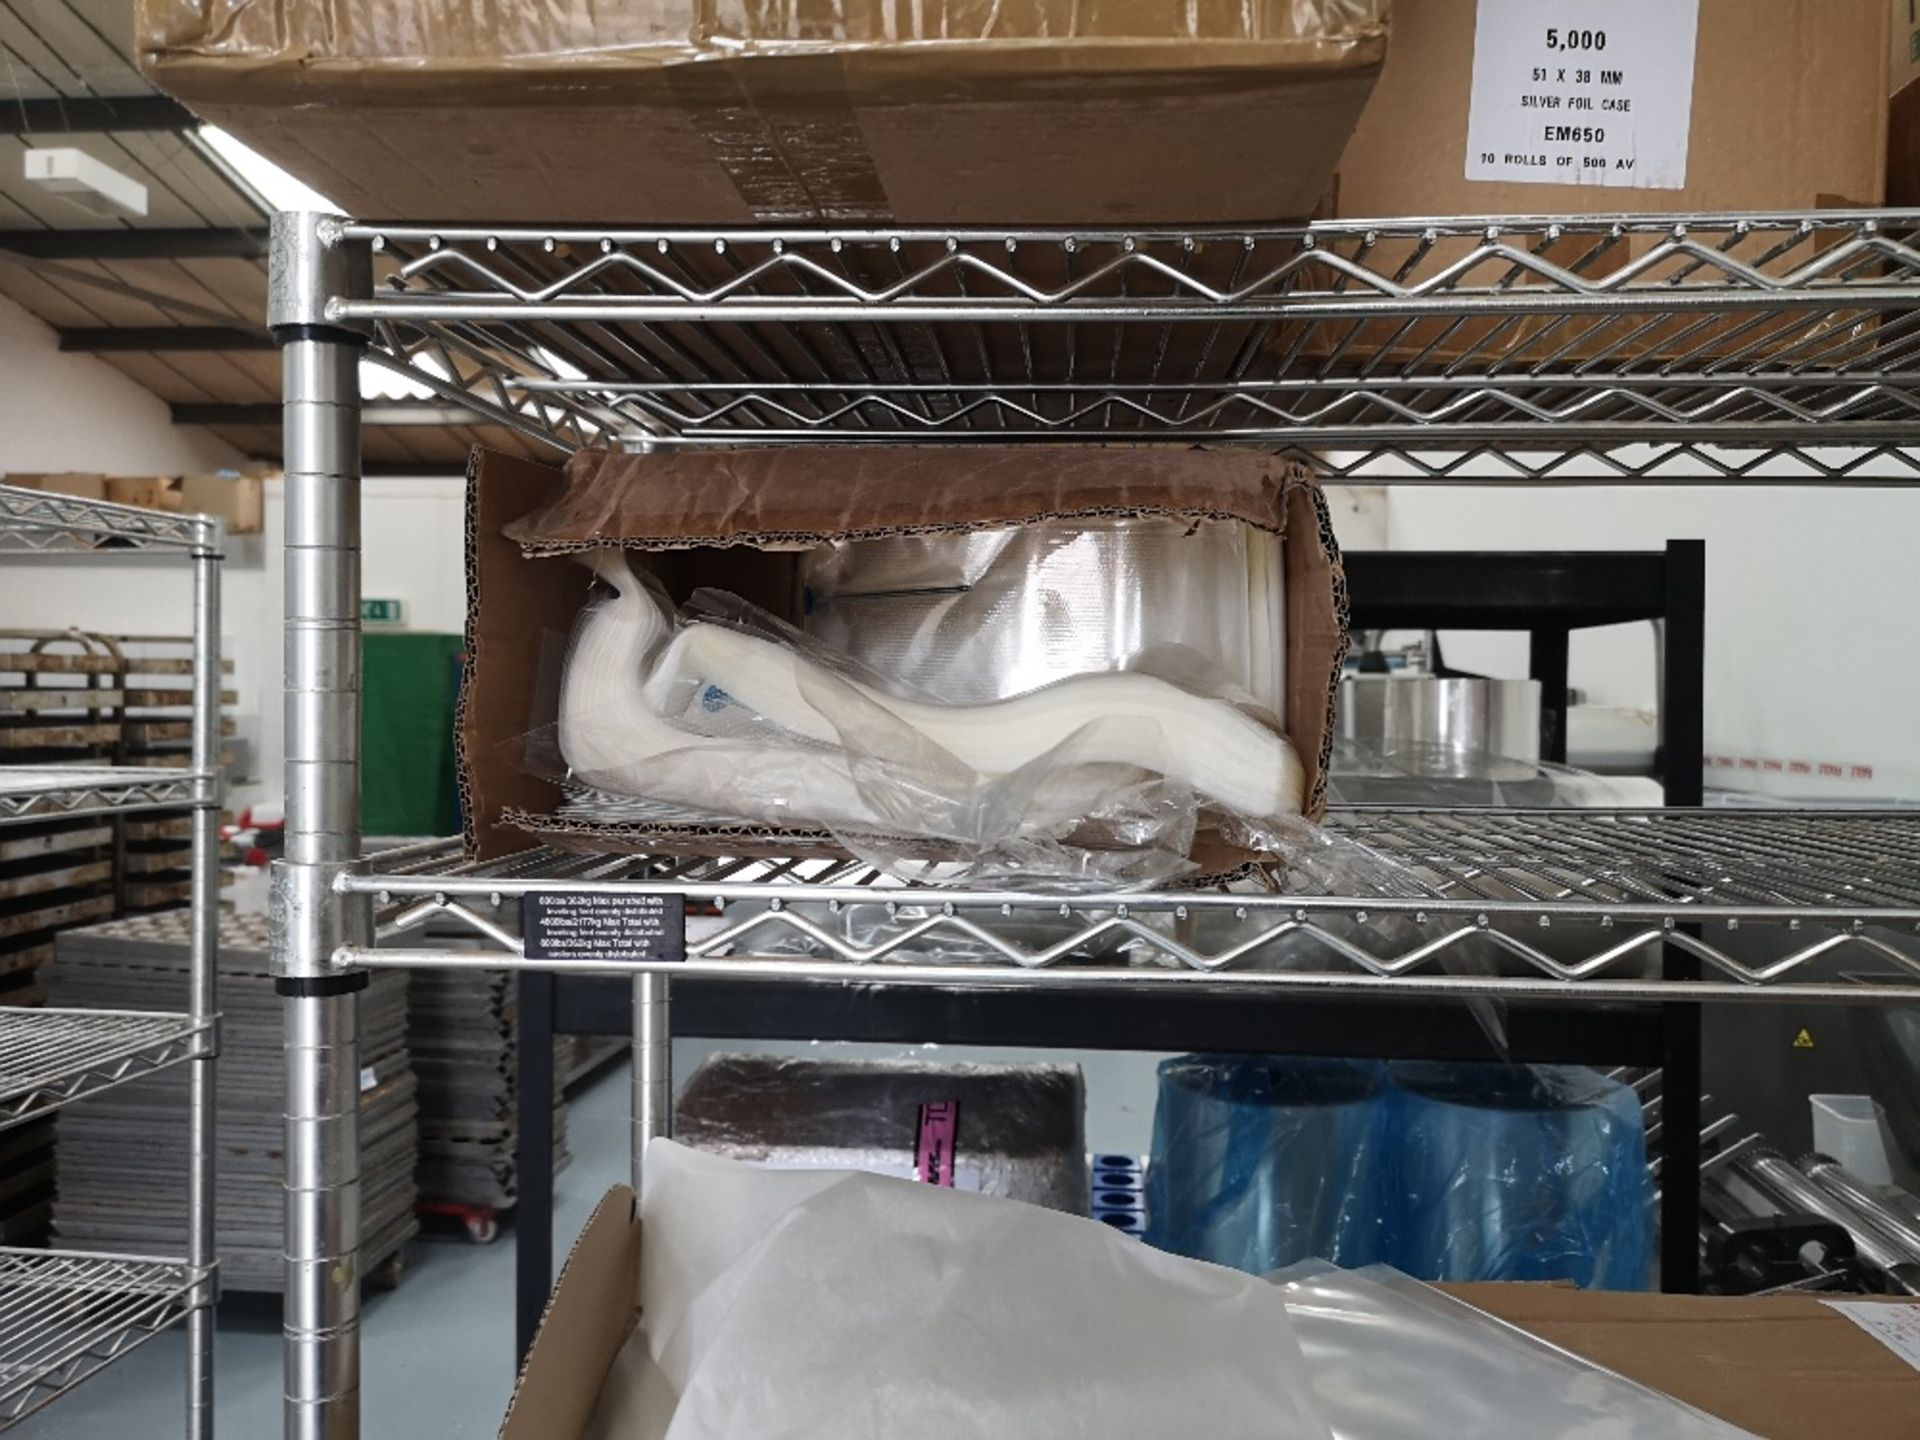 Chrome Wire Five Tier Rack & Contents - Image 6 of 7